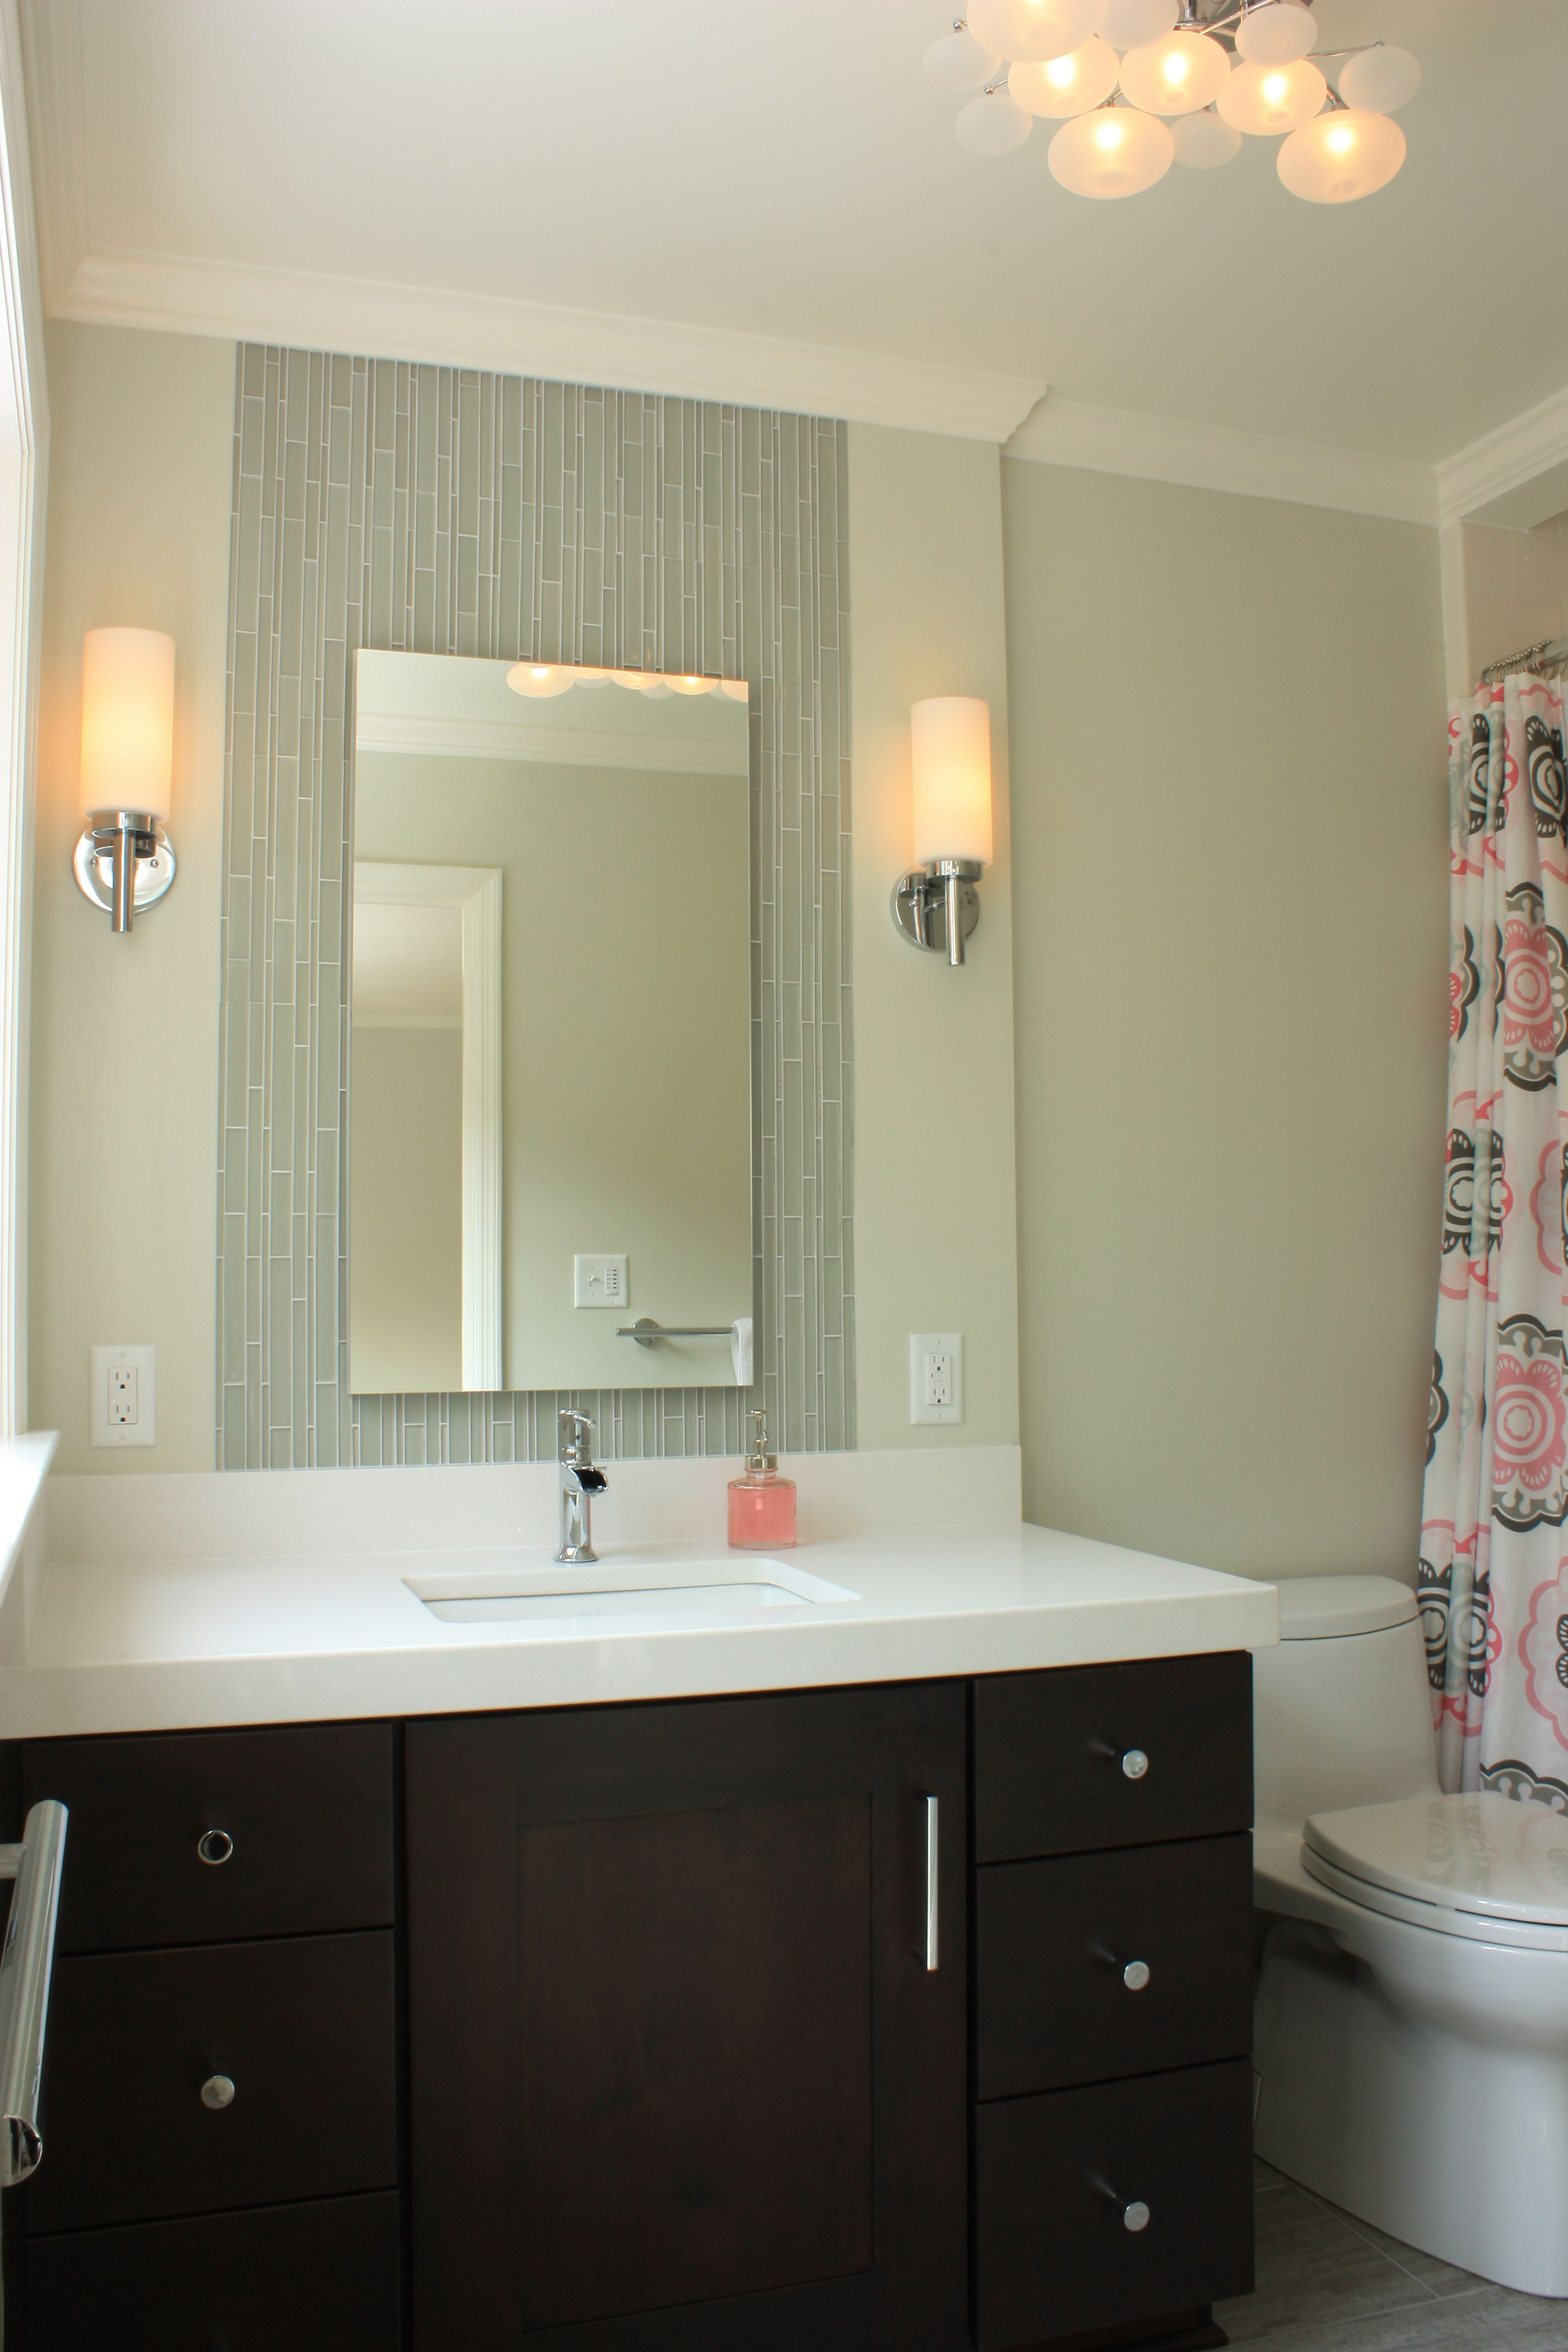 This Bathroom Was Redesigned To Suit The Homeowners Toddler As